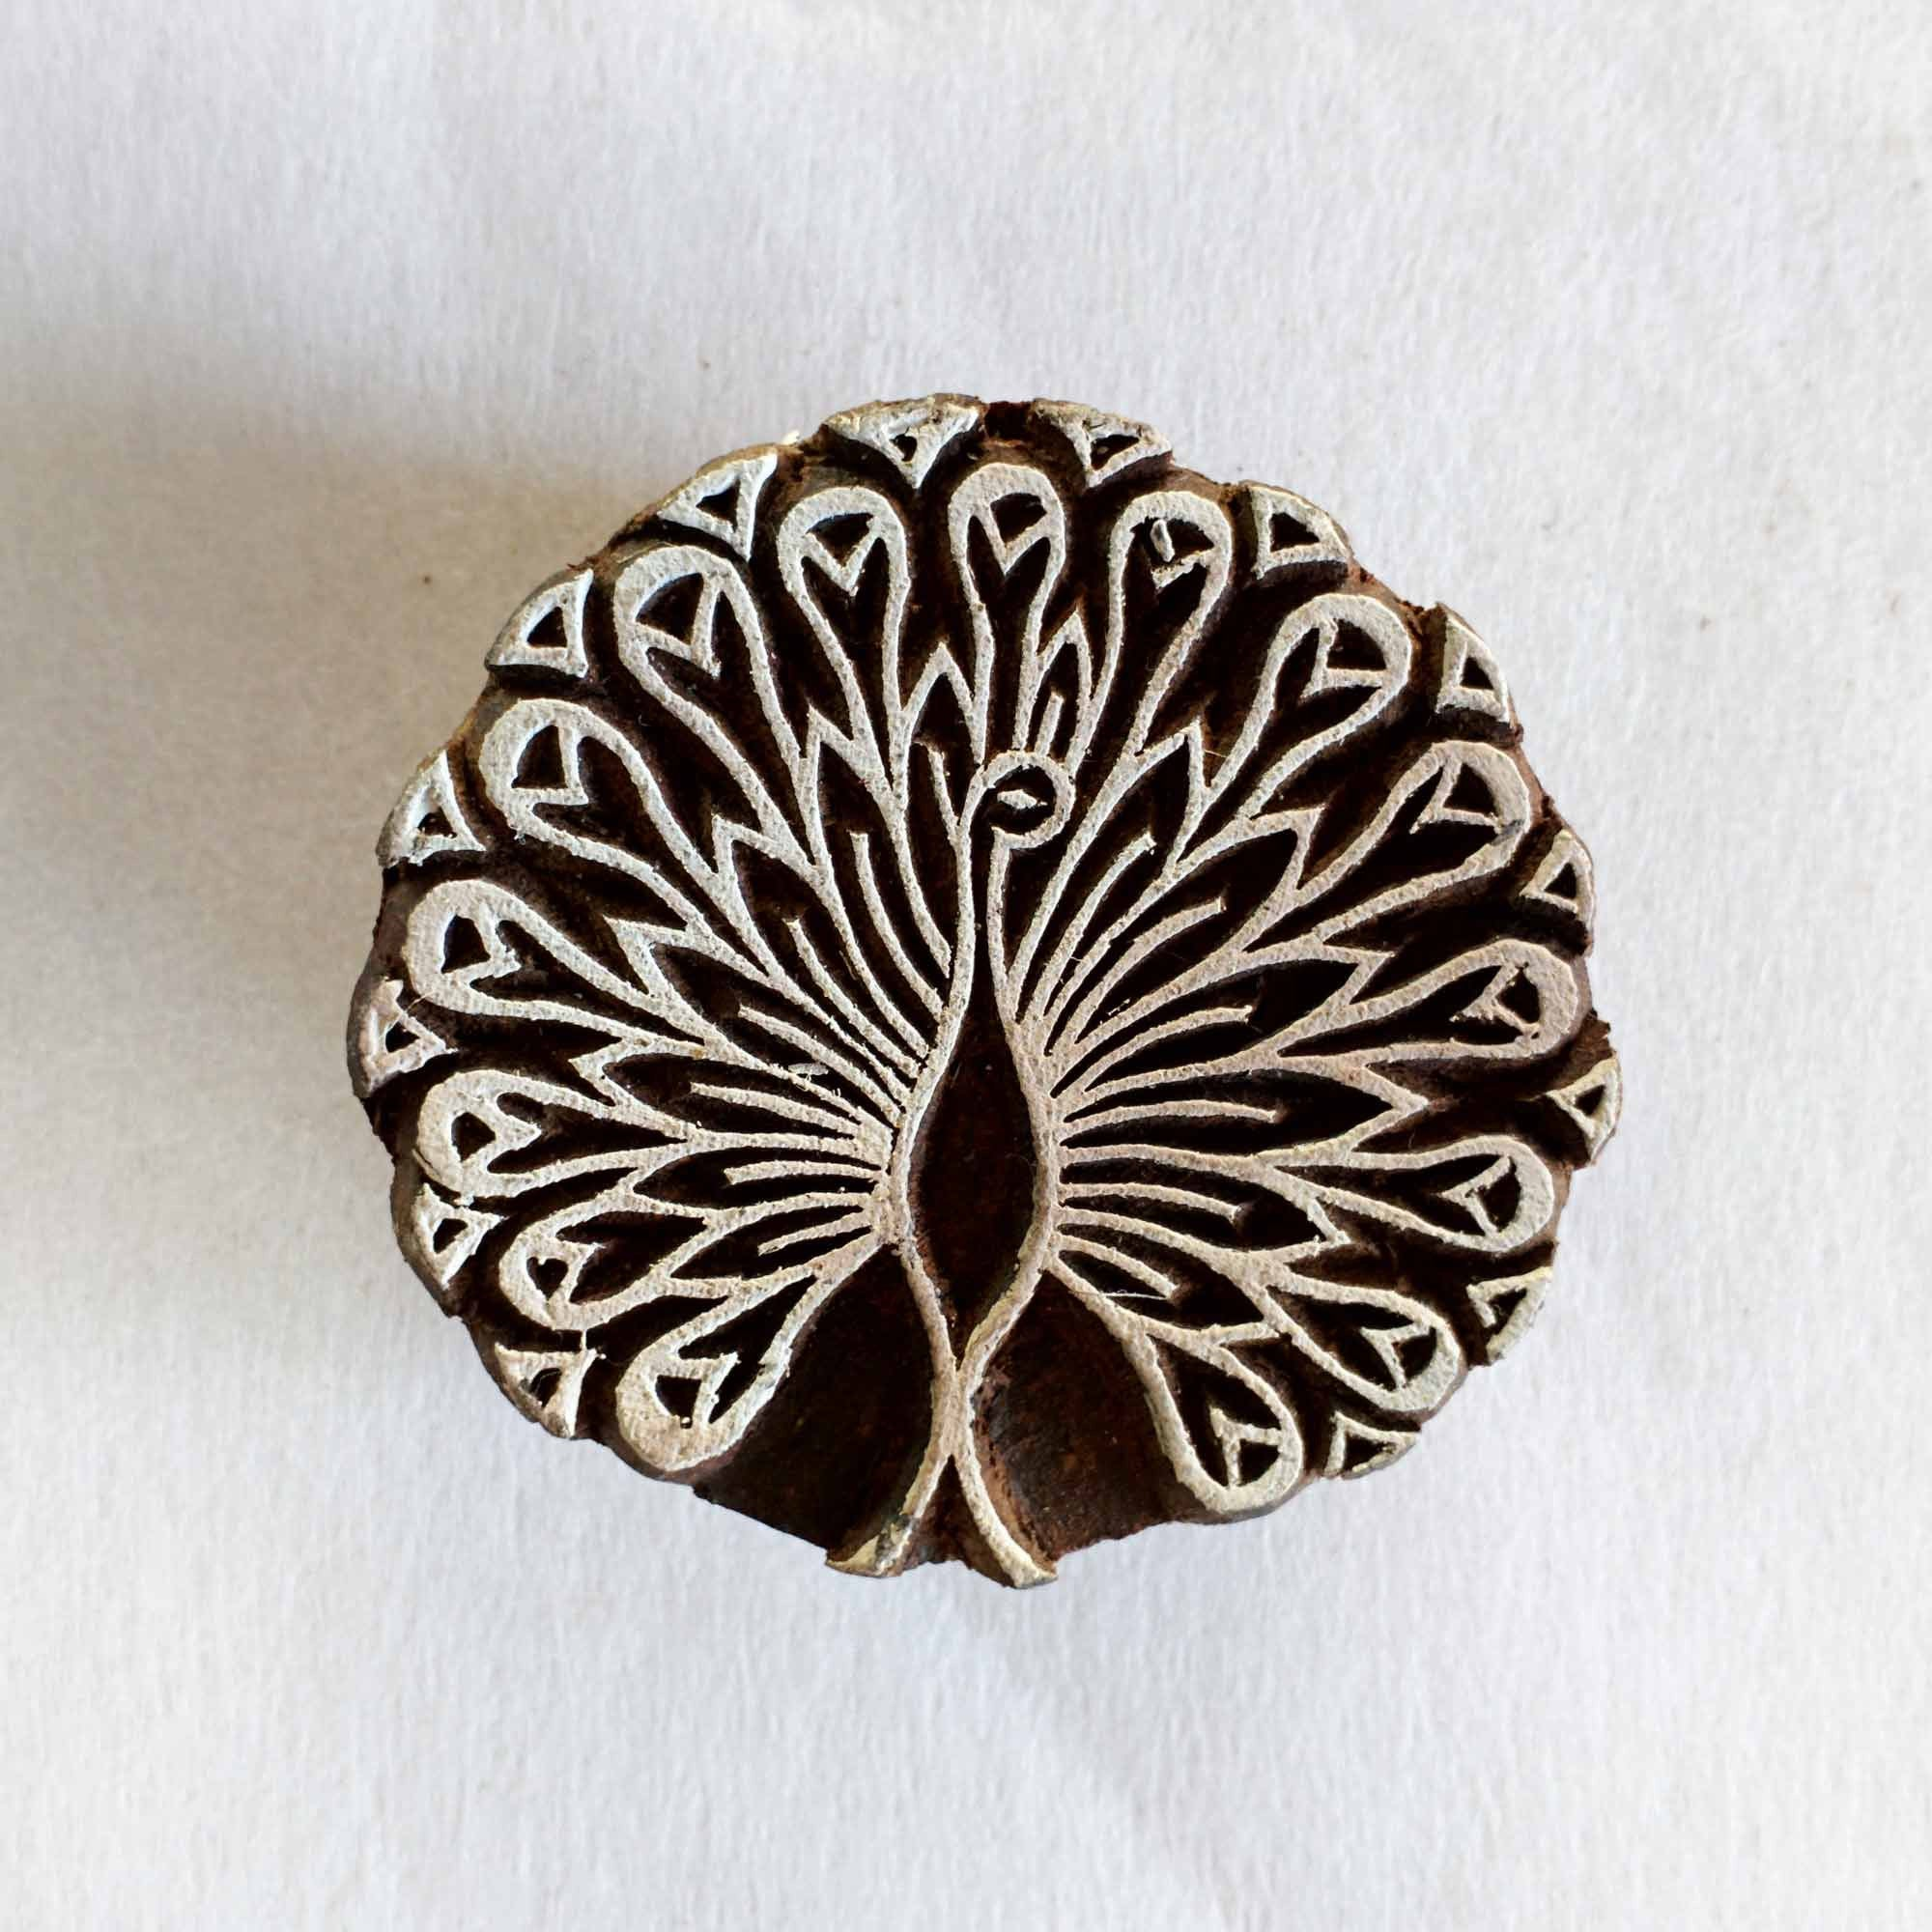 Peacock Wooden Block Printing Stamp For Fabric And Paper